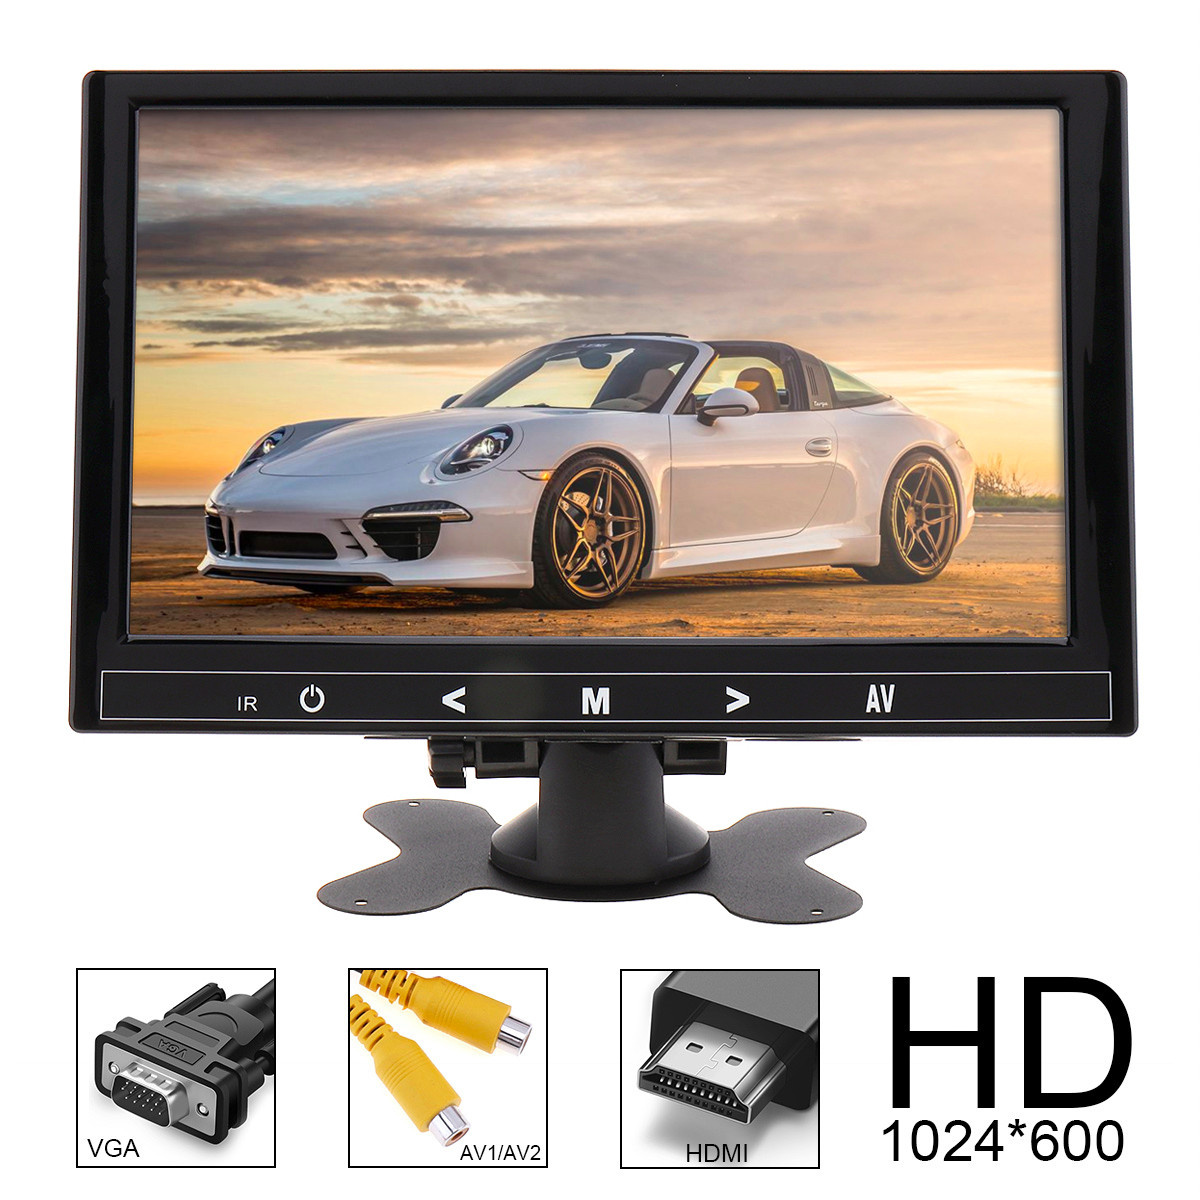 9 Inch 16:9 HD TFT LCD Color Car Rear View Monitor 2 Video Input DVD VCD Headrest Rearview Monitor Support Audio Video HDMI VGA hippcron 5 inch car monitor tft lcd 5 hd digital 16 9 800 480 screen 2 way video input for reverse rear view camera dvd vcd